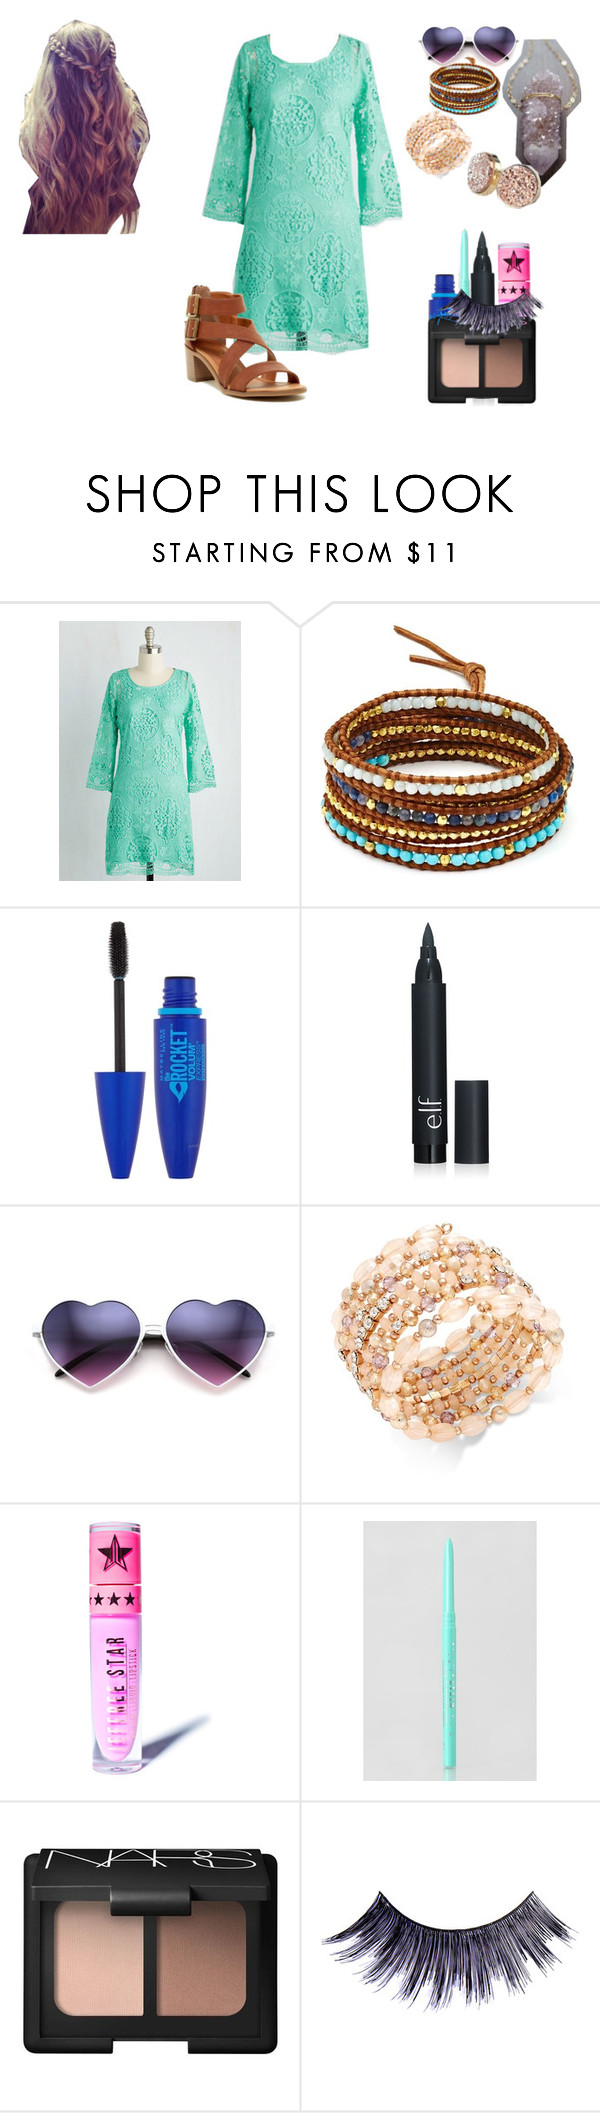 """""""Lillian Lockstar In """"THe Kids Aren't Alright"""" Music Video"""" by shestheman01 on Polyvore featuring Chan Luu, Maybelline, INC International Concepts, Jeffree Star, Stila, Rampage, NARS Cosmetics and Manic Panic NYC"""